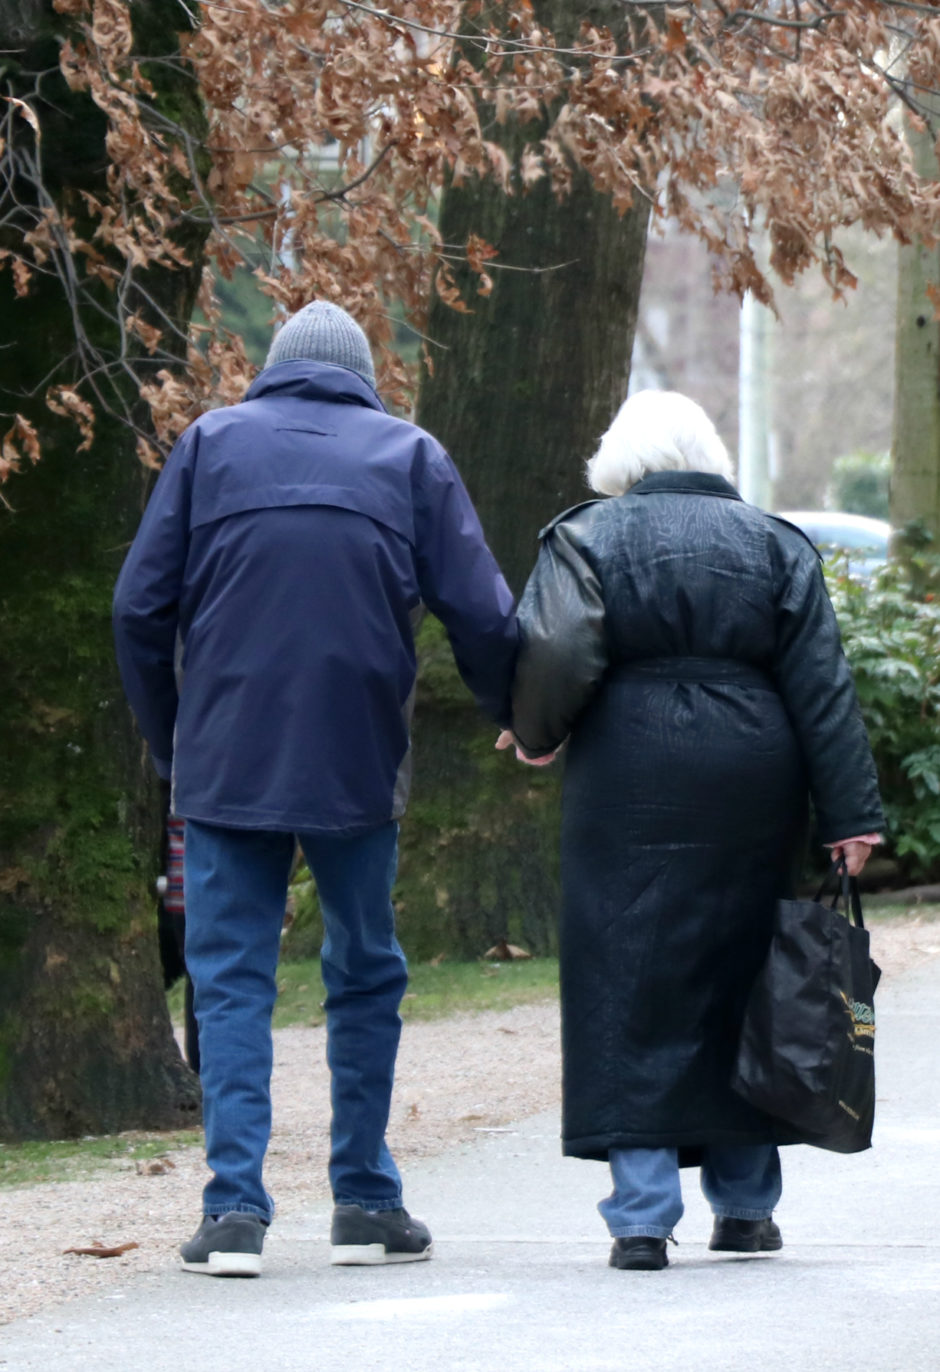 An older couple walks down a tree-lined street in Vancouver